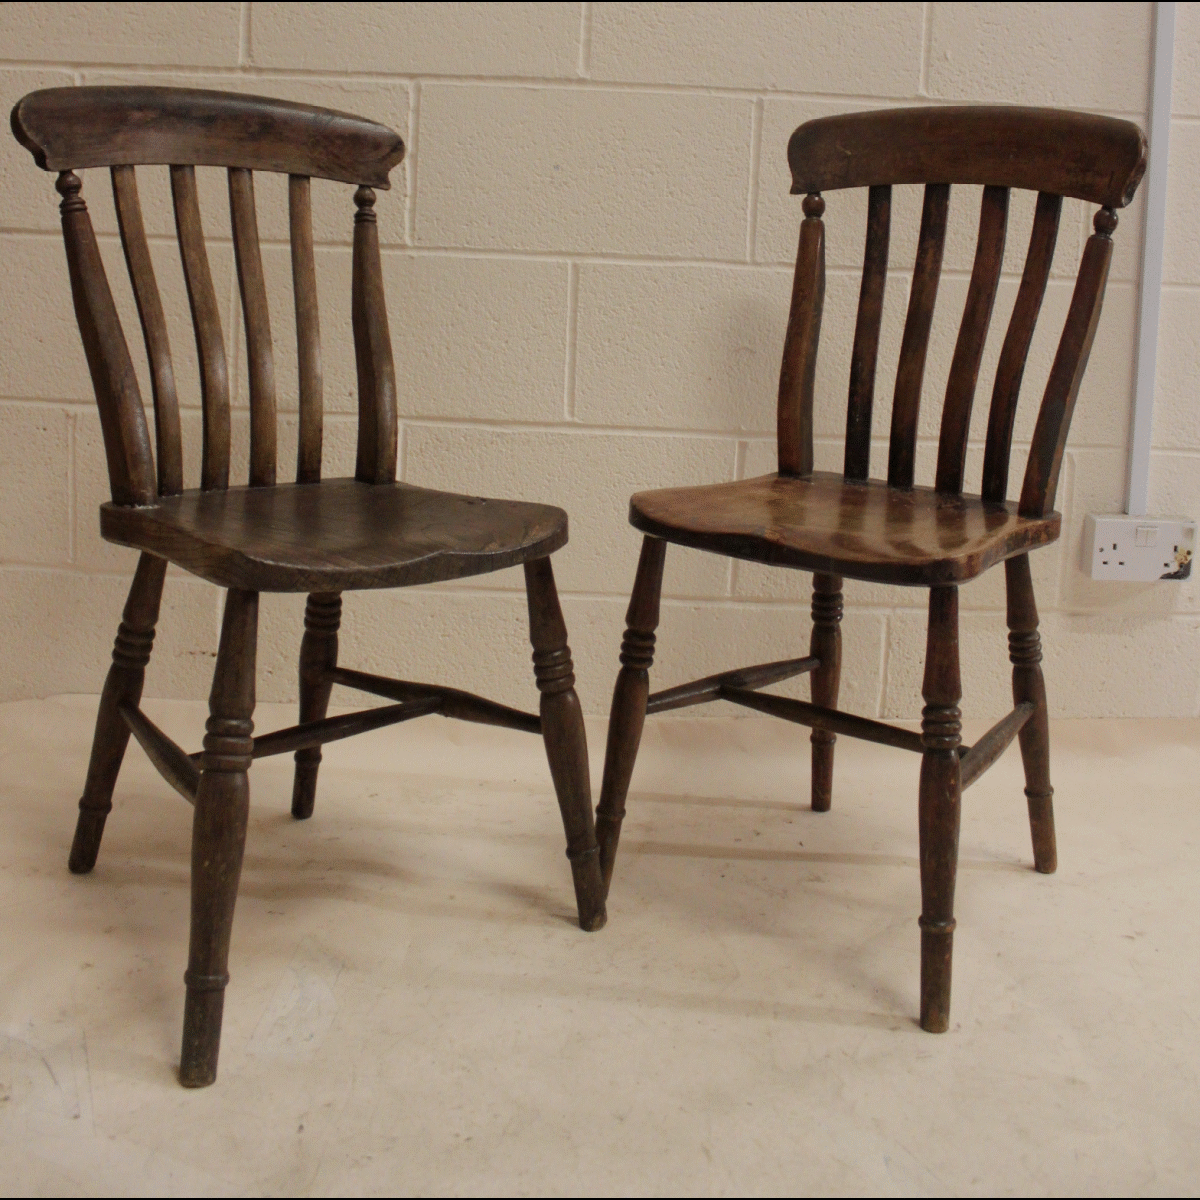 All Wood Dining Room Chairs: 0085288 All Wood Dining Chairs X2 (89cm Long By 38cm Wide